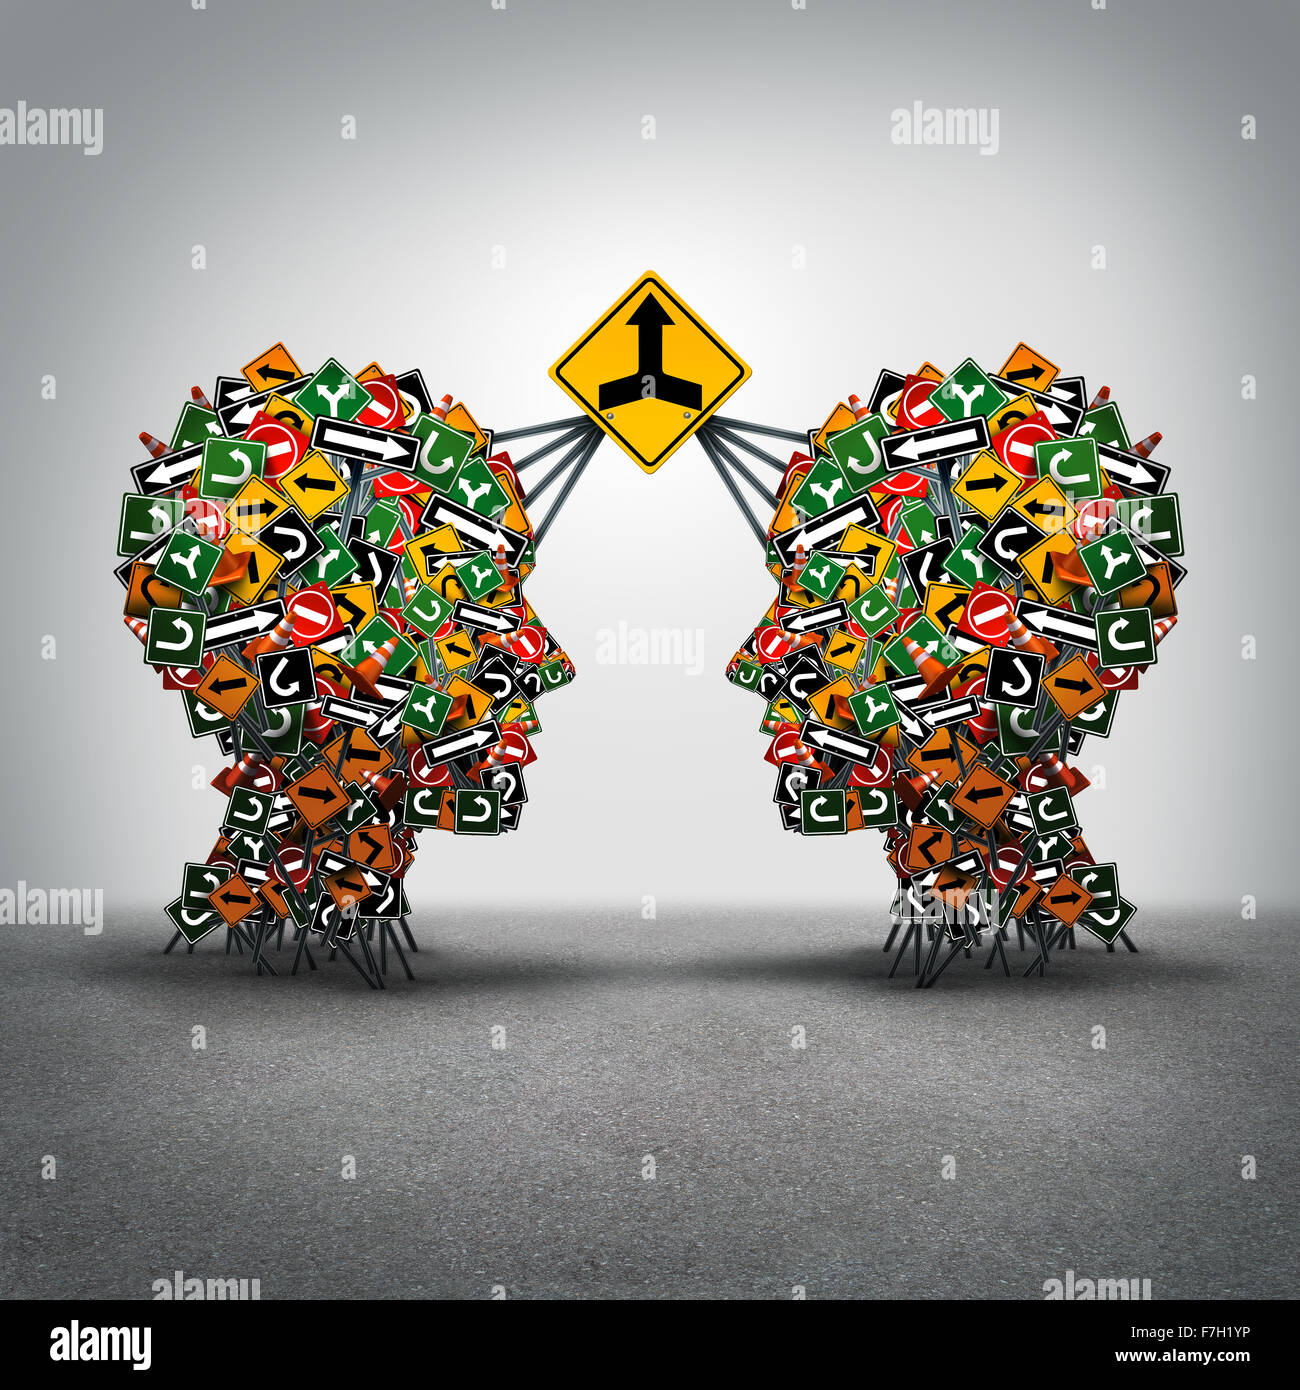 Agreement business concept as two groups og traffic signs shaped as a human head connected together by a big signage - Stock Image